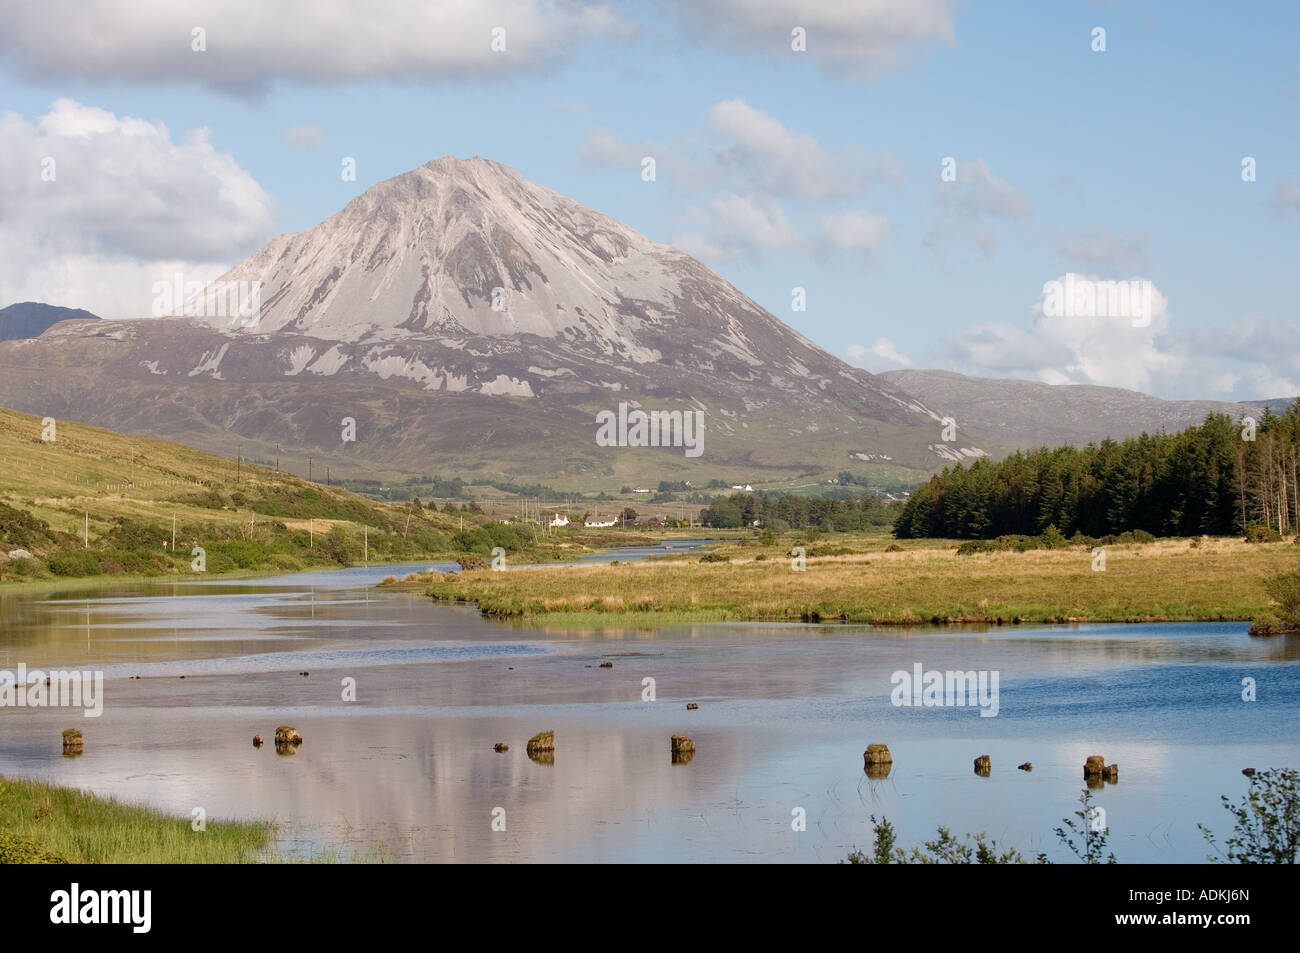 From Gweedore to white quartzite scree slopes of Errigal, County Donegal, Ireland. Lough Nacung and River Clady - Stock Image